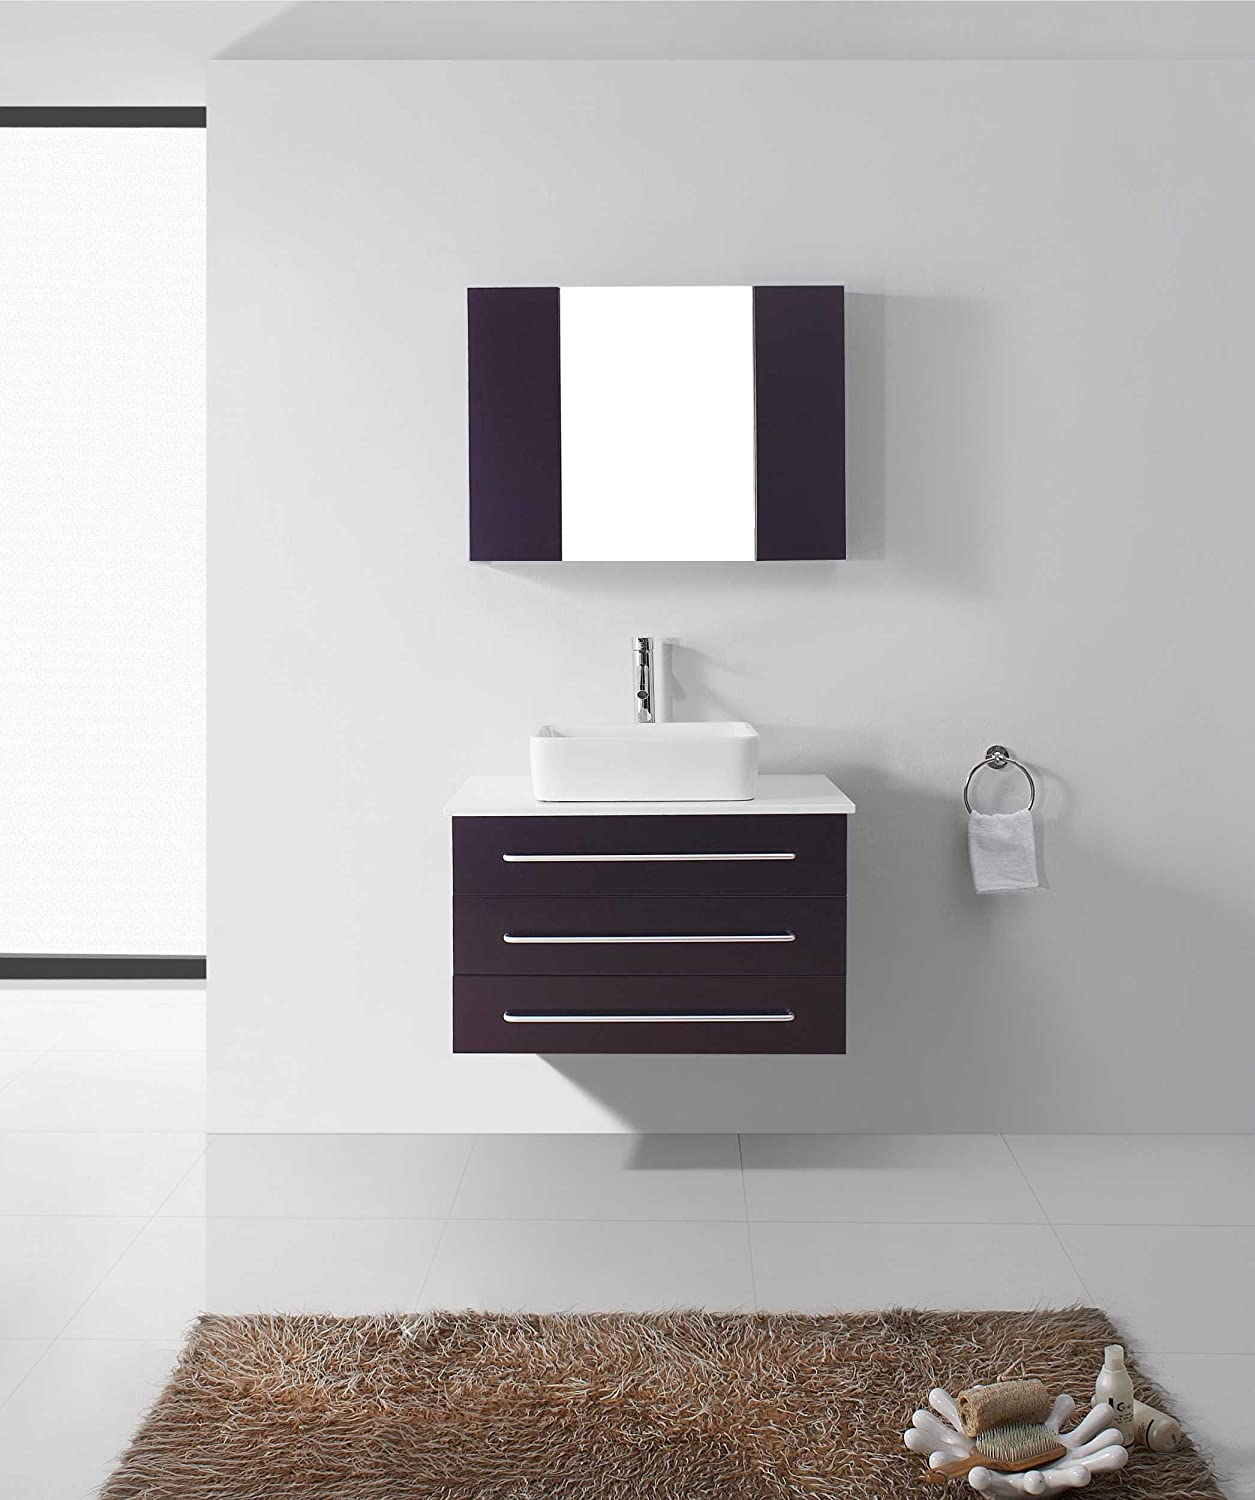 Virtu USA UM 3057 S BL Ivy 33 Inch Wall Mounted Single Sink Bathroom Vanity   White Stone Countertop  Black Finish     Amazon comVirtu USA UM 3057 S BL Ivy 33 Inch Wall Mounted Single Sink  . 32 Inch Bathroom Vanity. Home Design Ideas